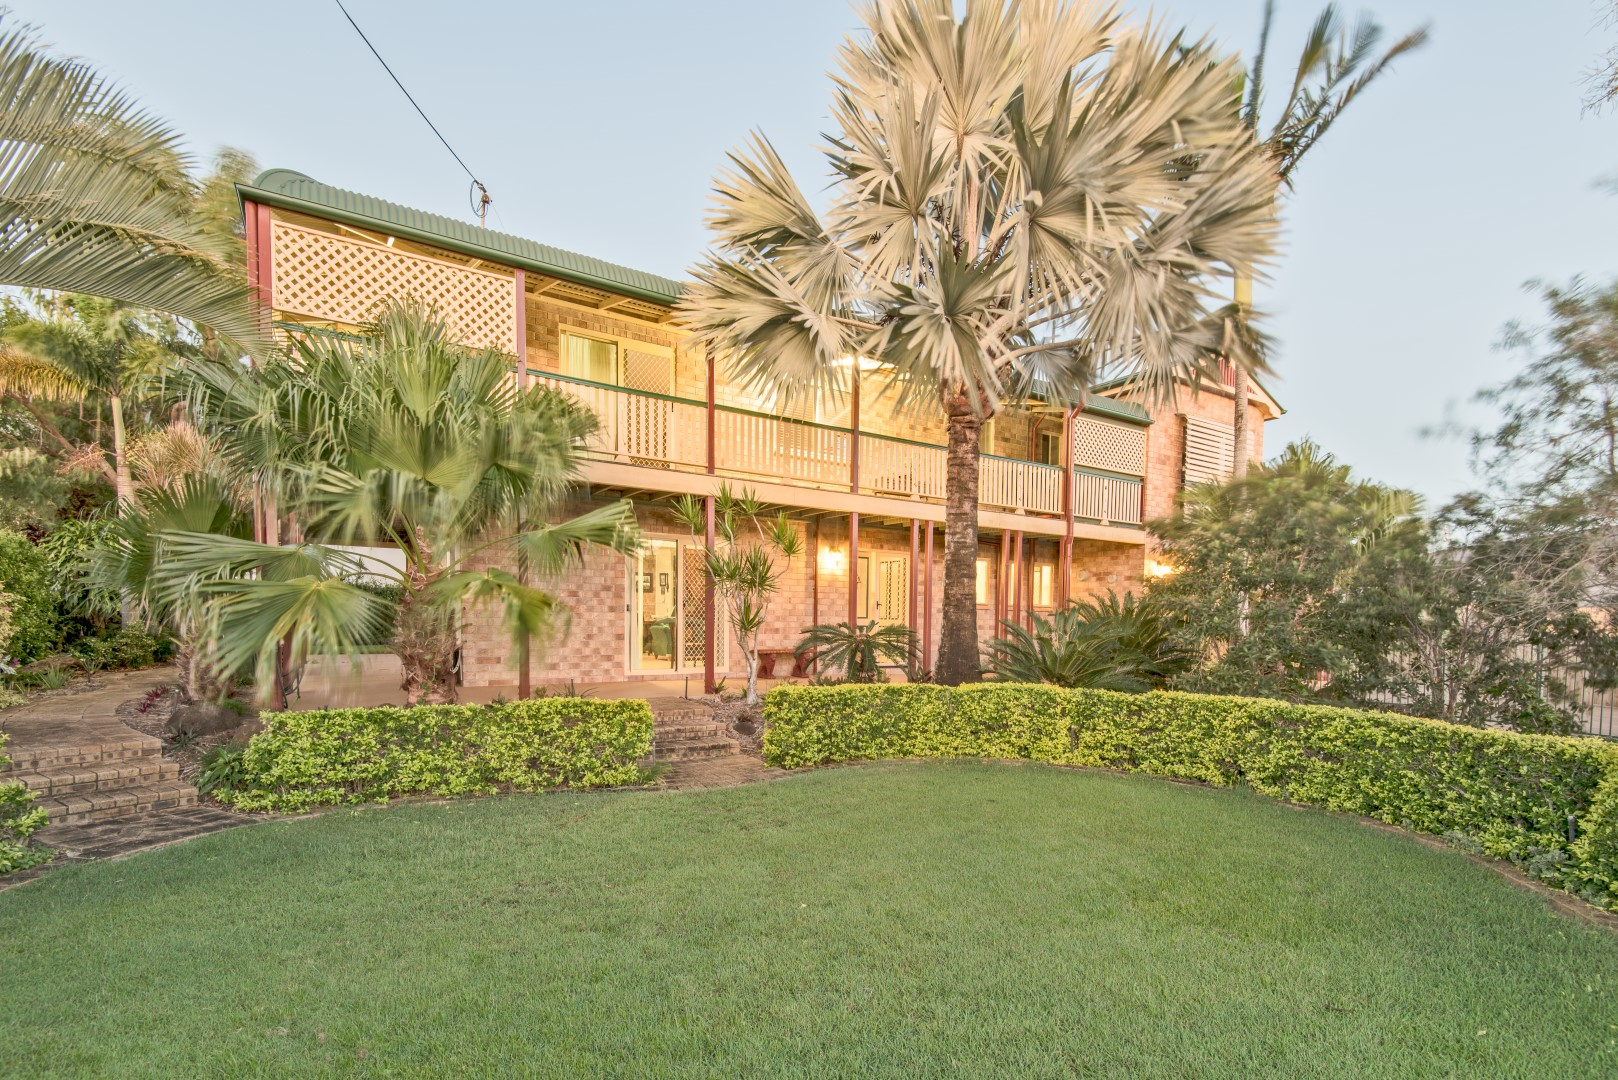 Bed And Breakfast Qld For Sale